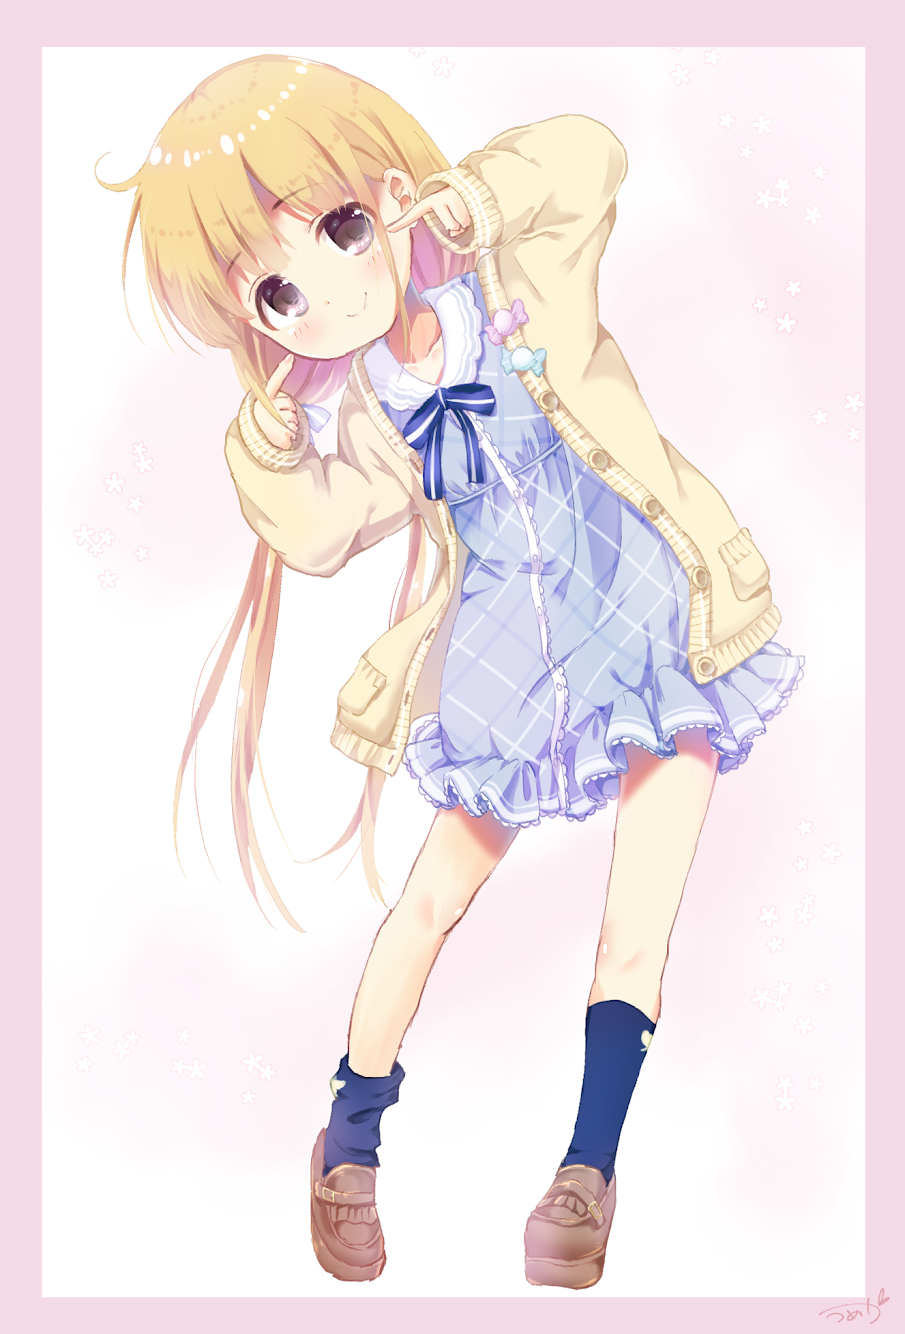 1girl ahoge bangs beige_cardigan blonde_hair blue_bow blue_dress blue_legwear blush border bow brown_eyes brown_footwear buttons candy cardigan closed_mouth collarbone collared_dress dot_nose dress eyebrows_visible_through_hair food frilled_dress frills full_body futaba_anzu hair_bow highres idolmaster idolmaster_cinderella_girls idolmaster_cinderella_girls_starlight_stage kneehighs leaning_to_the_side loafers long_hair looking_at_viewer low_twintails mearian pointing pointing_at_self shoes sidelocks signature sleeves_past_wrists smile solo standing striped striped_bow twintails white_background